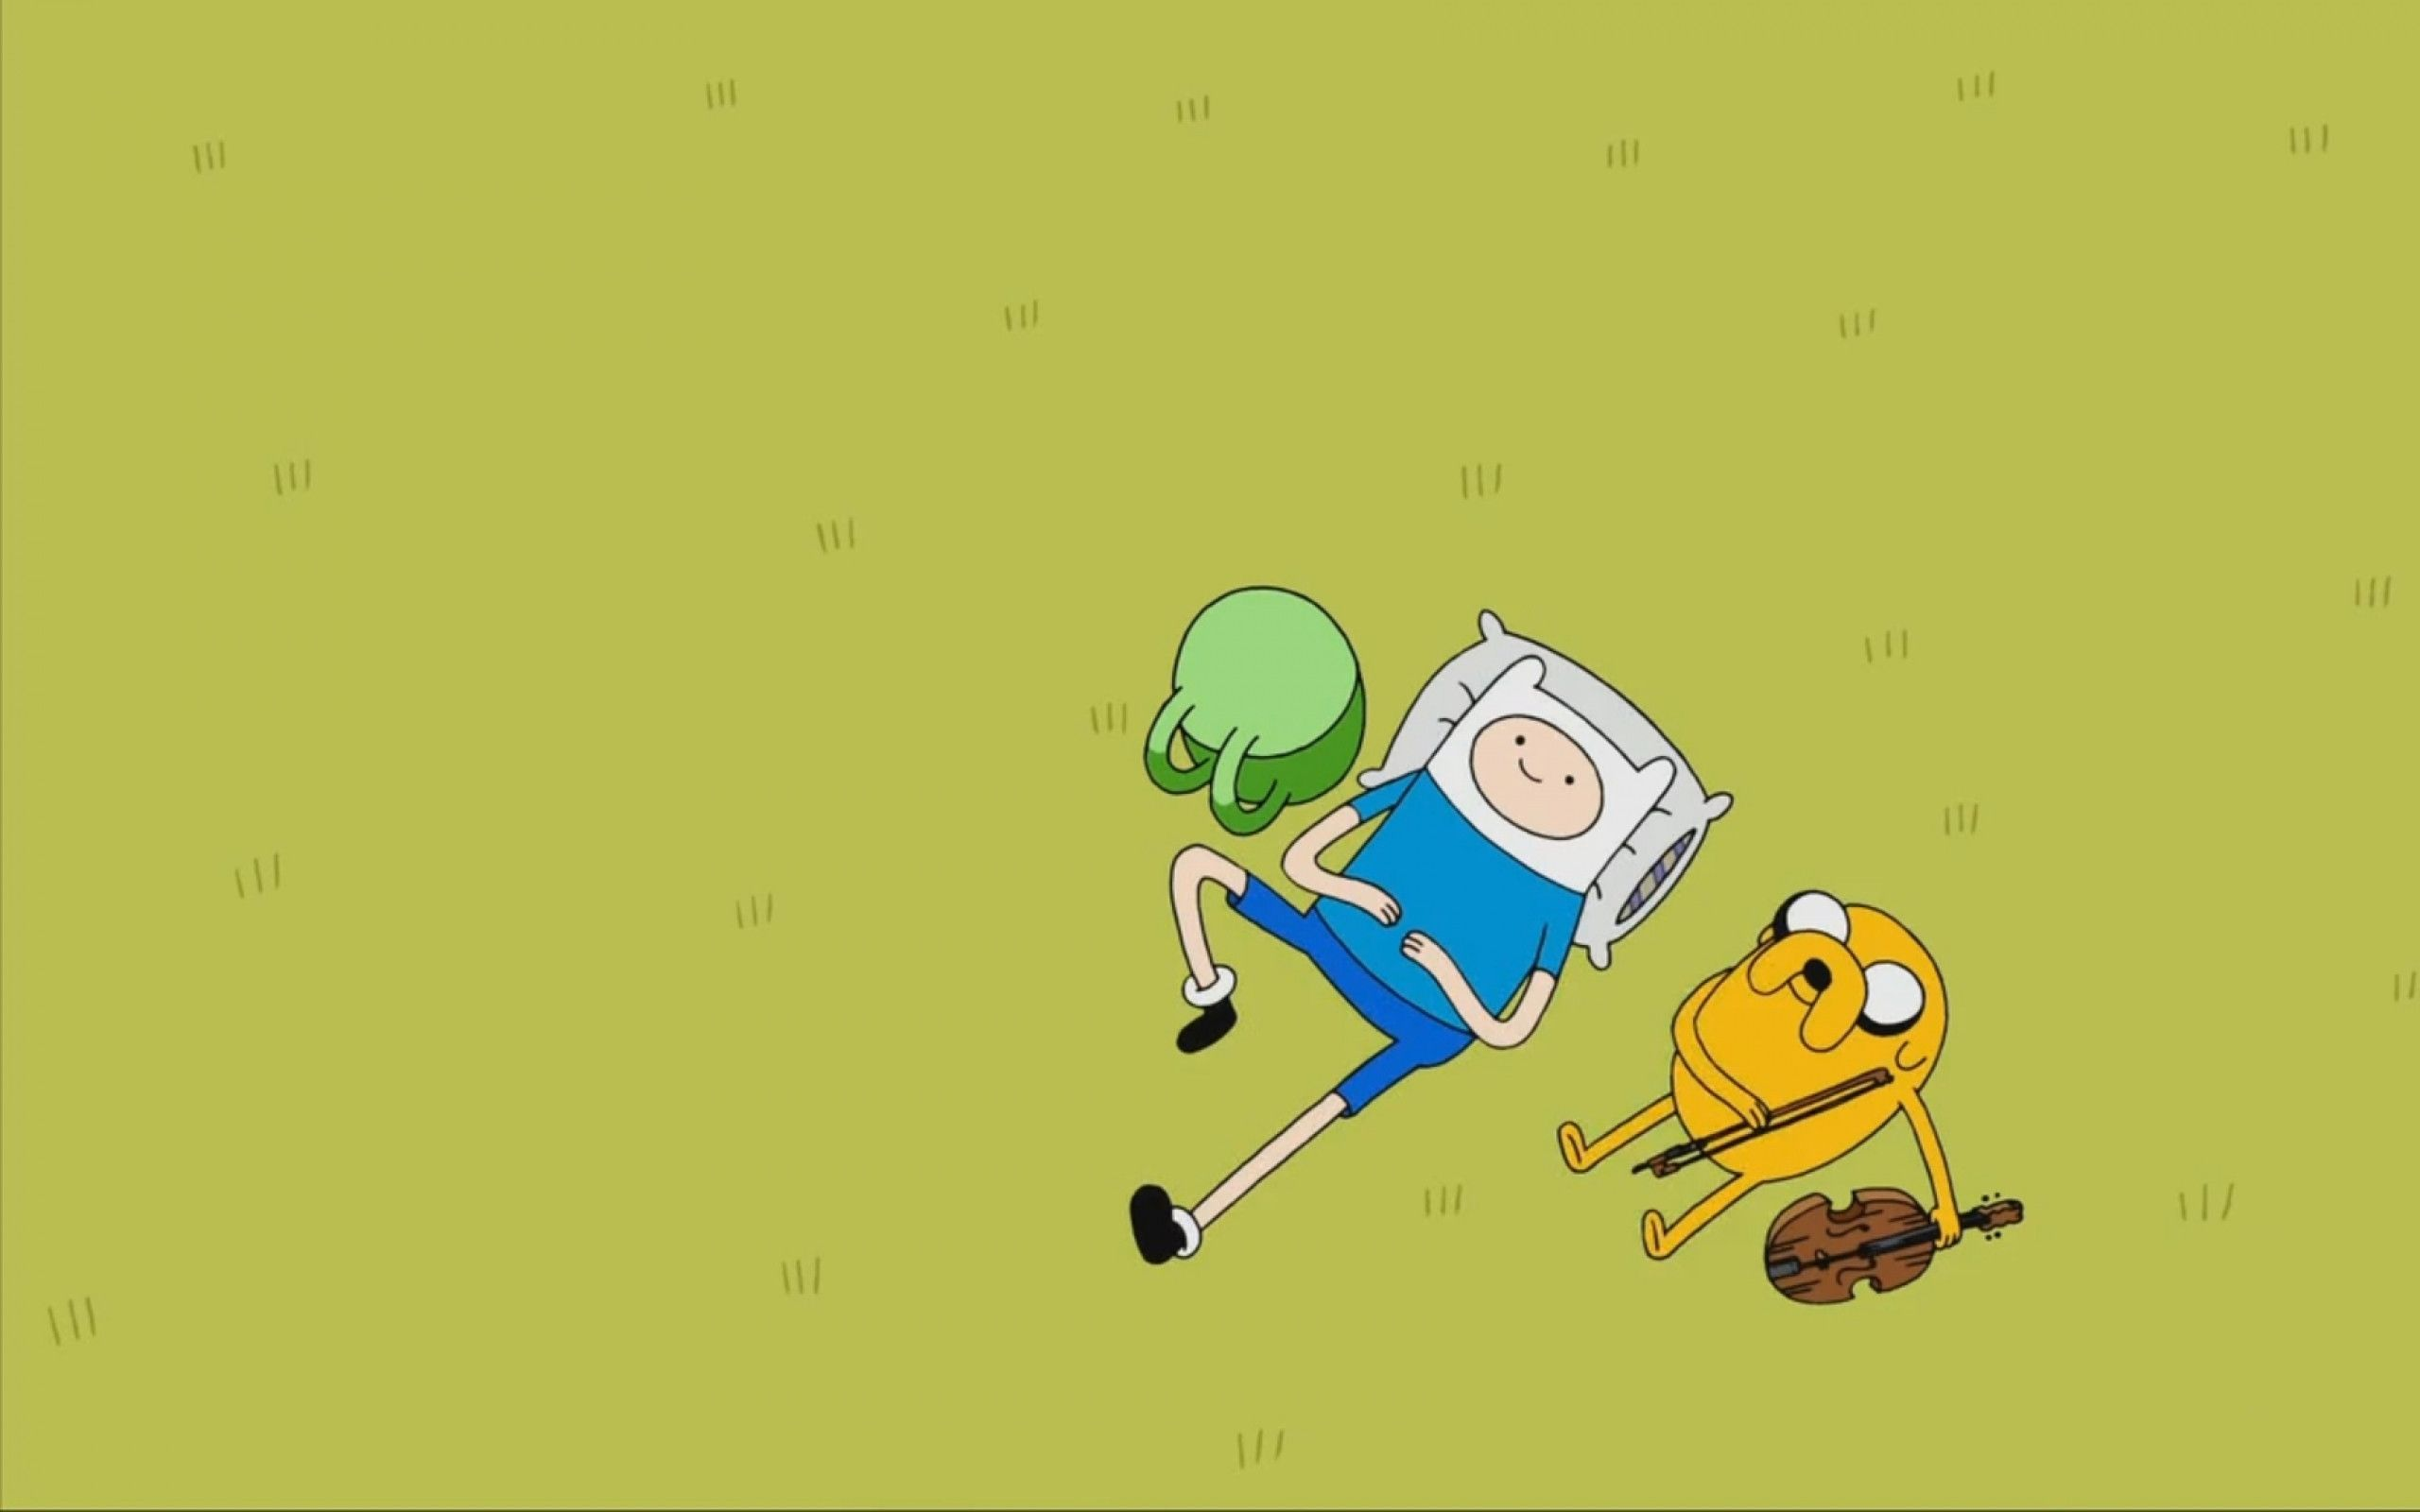 Adventure Time Wallpapers Hd Adventure Time Wallpaper Adventure Time Marceline Adventure Time Background